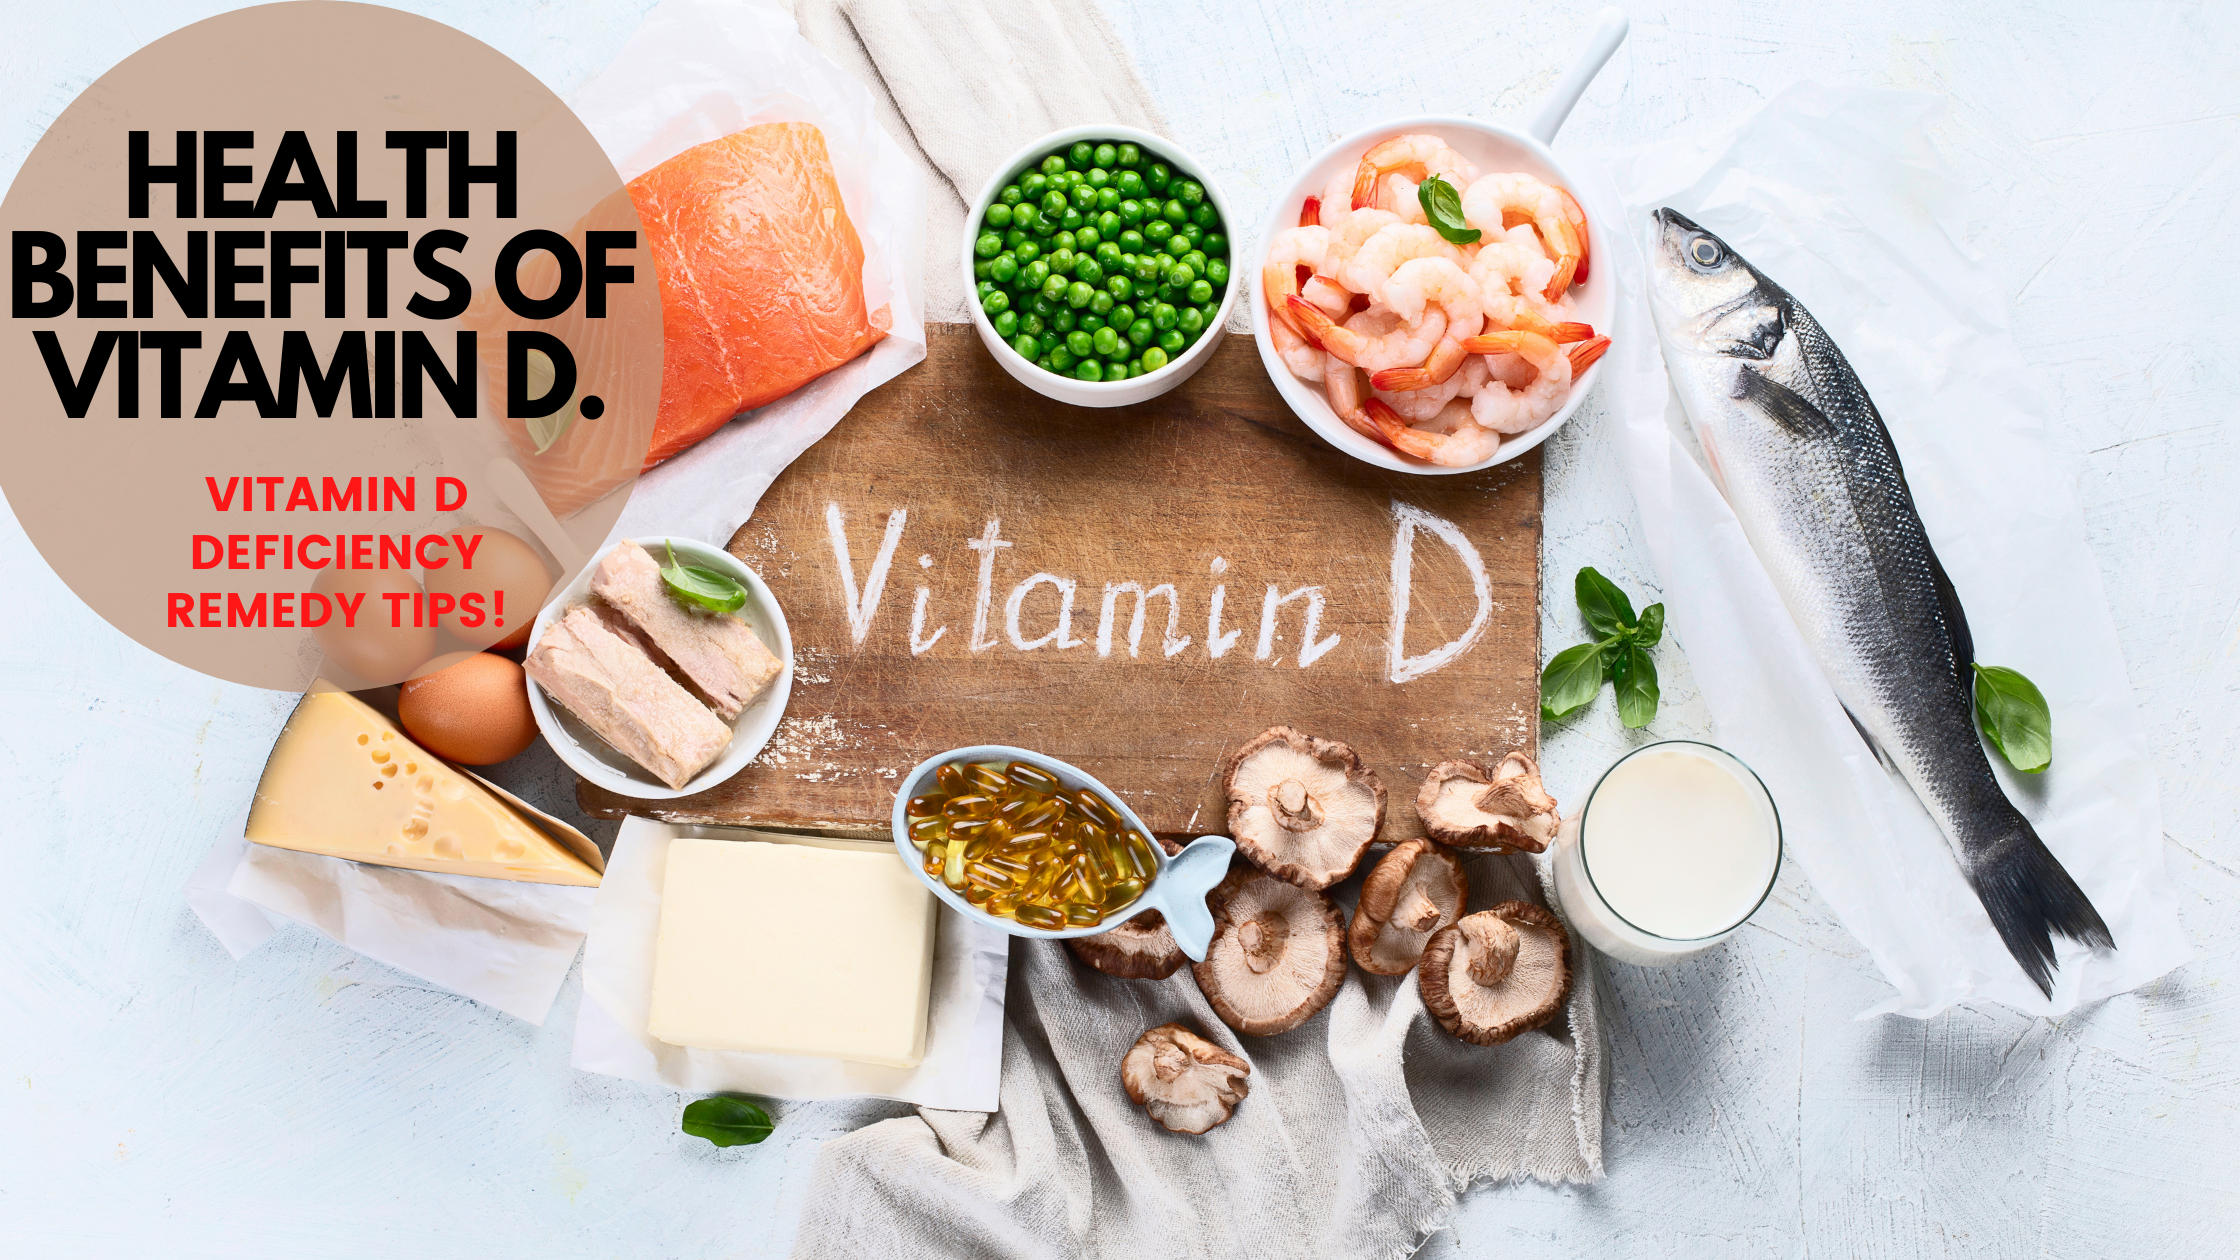 HEALTH BENEFITS OF VITAMIN D: Vitamin D deficiency remedy tips